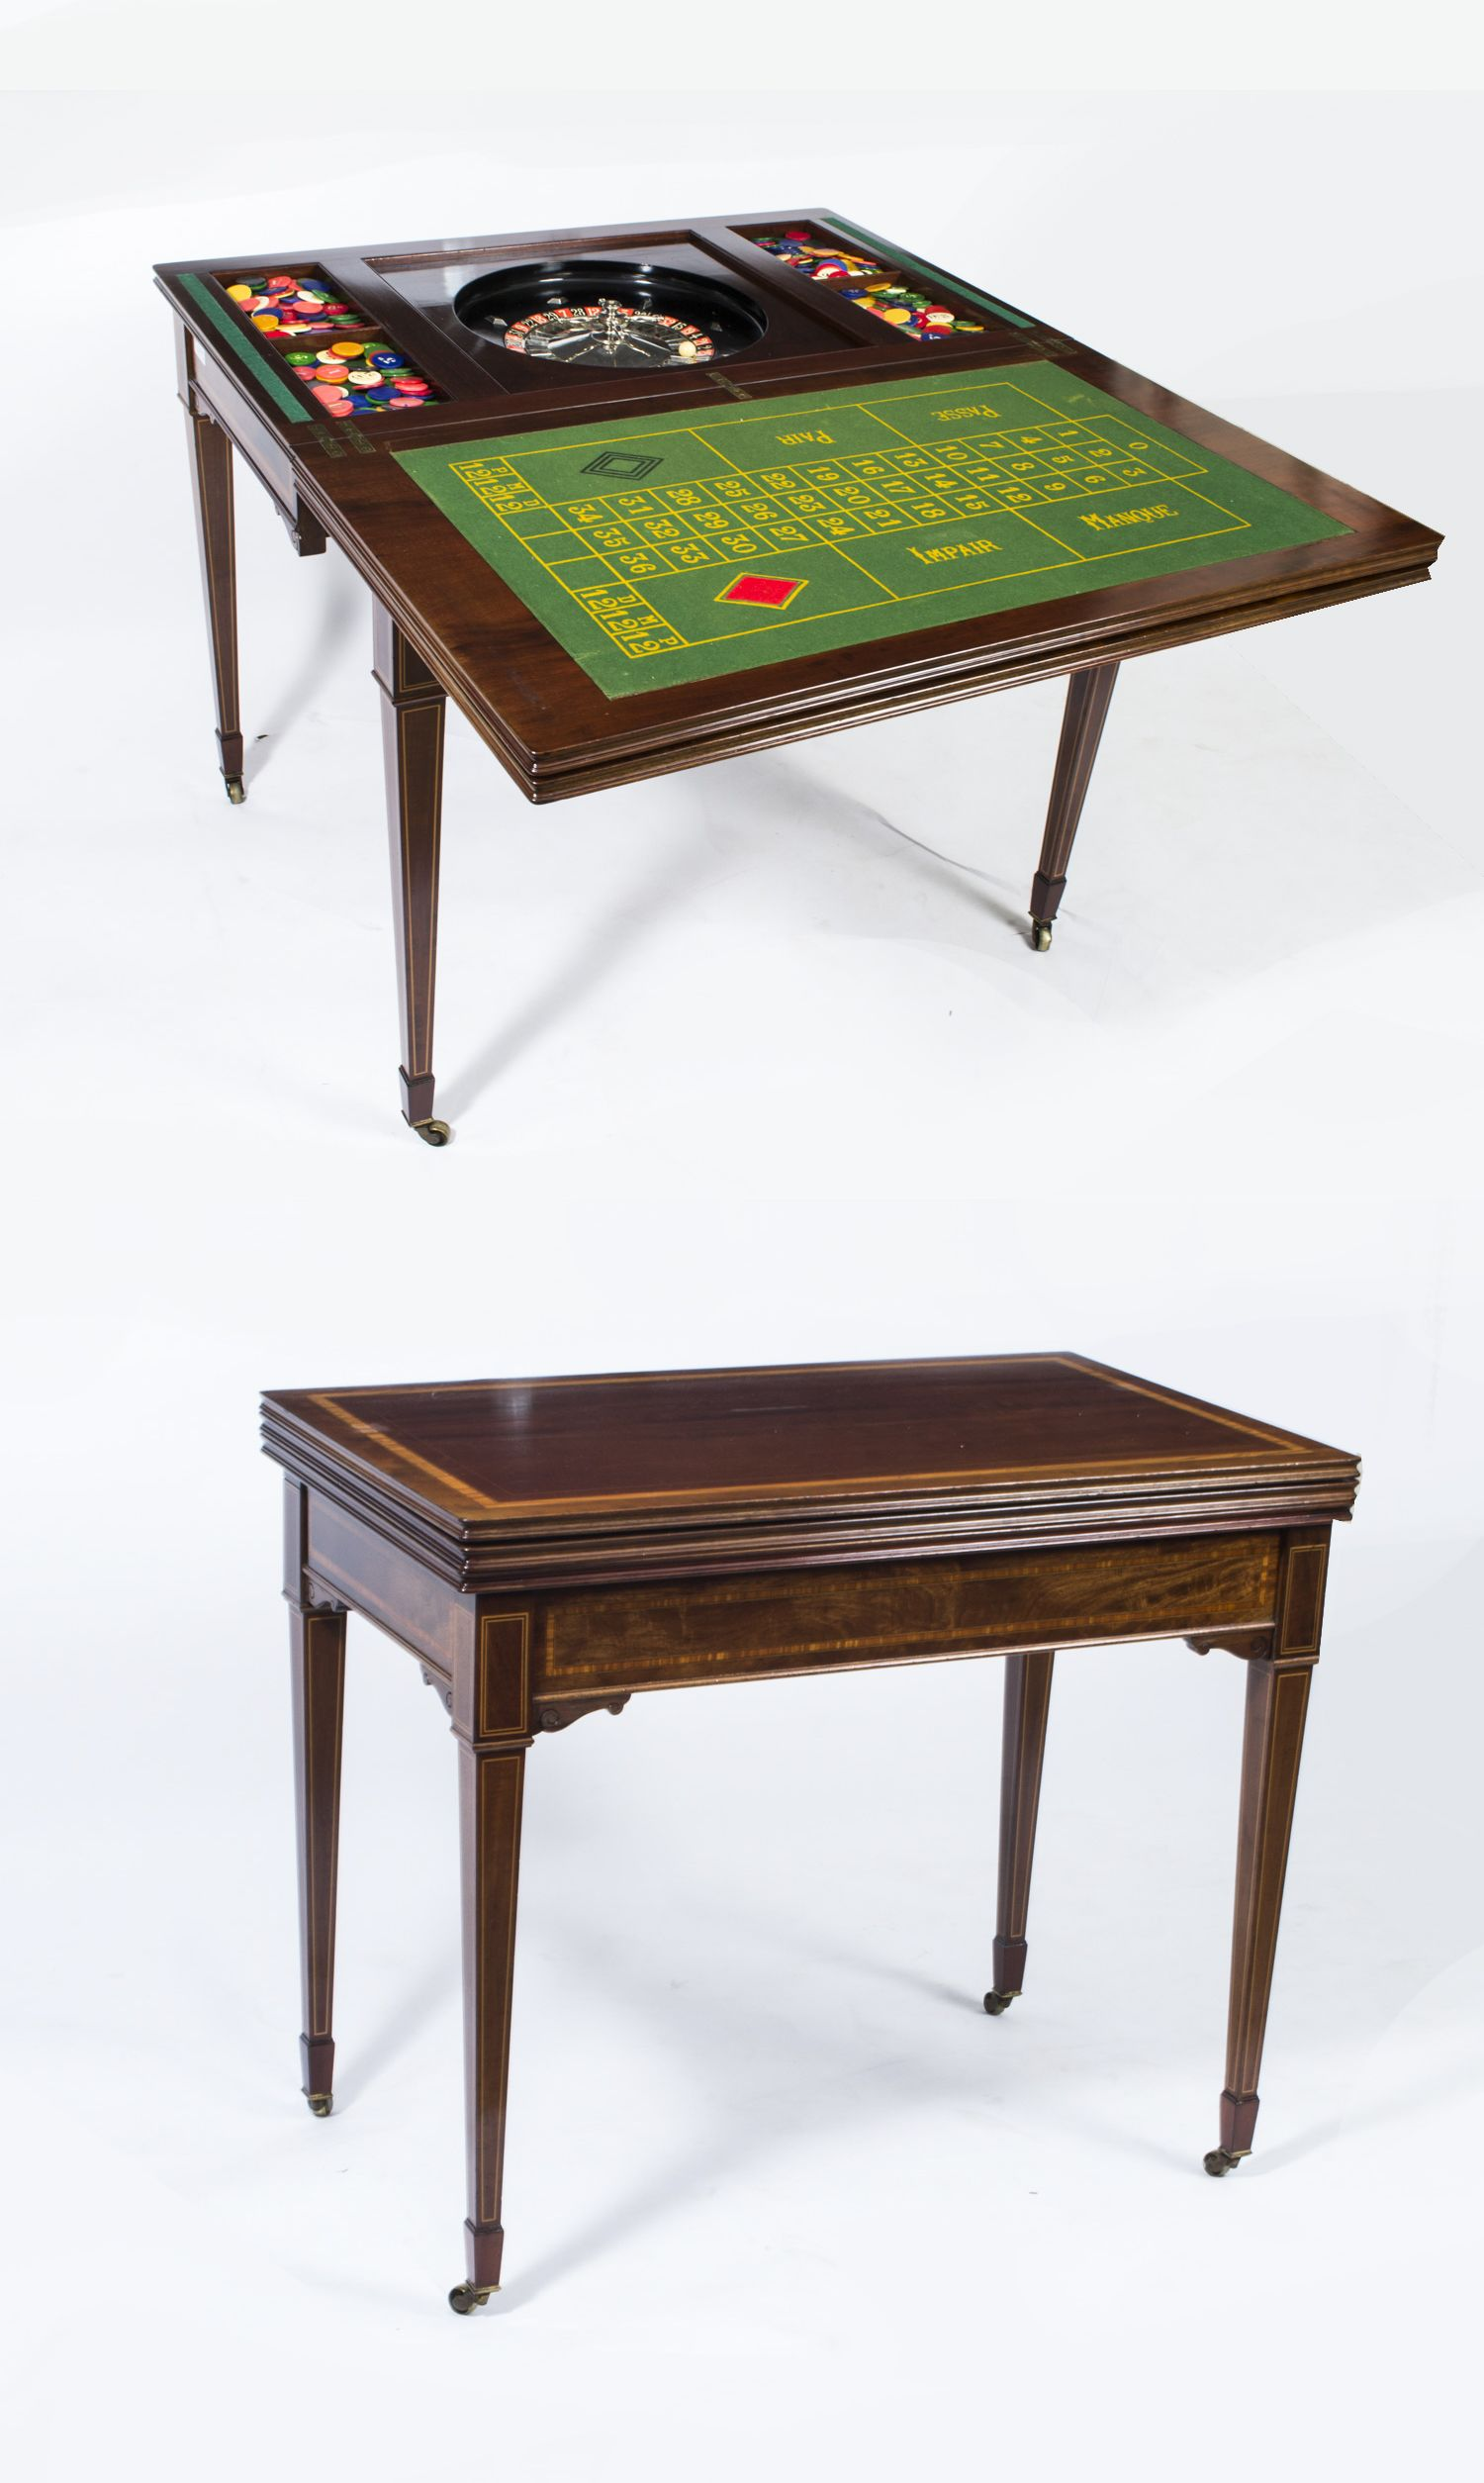 A beautiful antique Edwardian roulette table from the turn of the